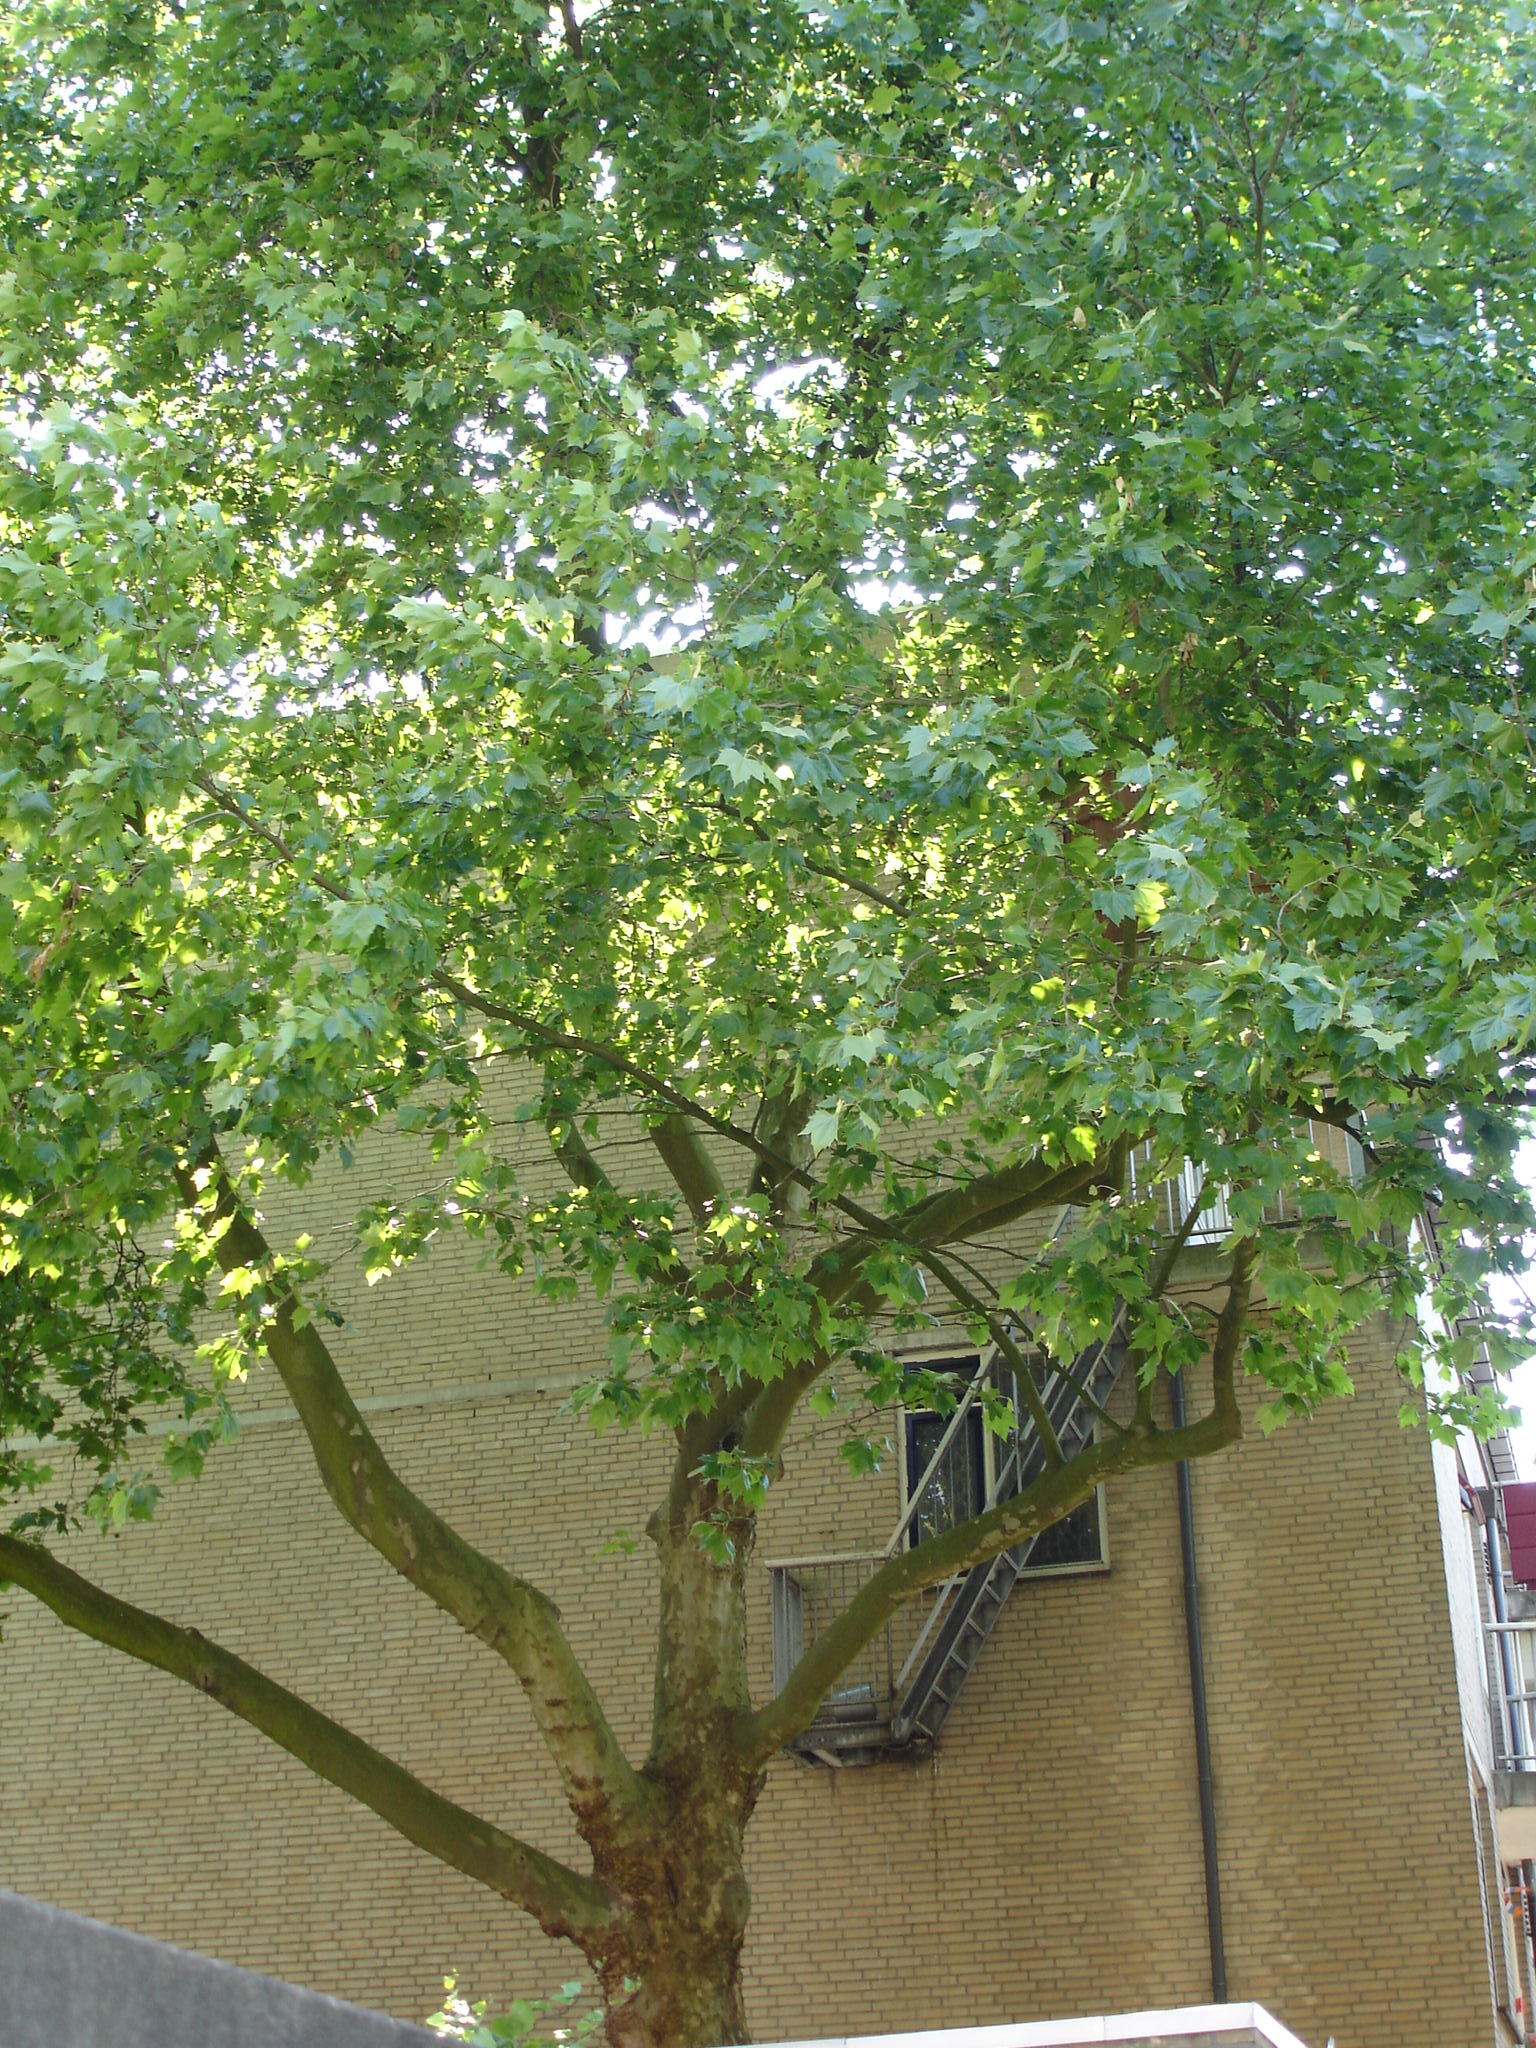 Nature in the city, City, Flat, Green, House, HQ Photo